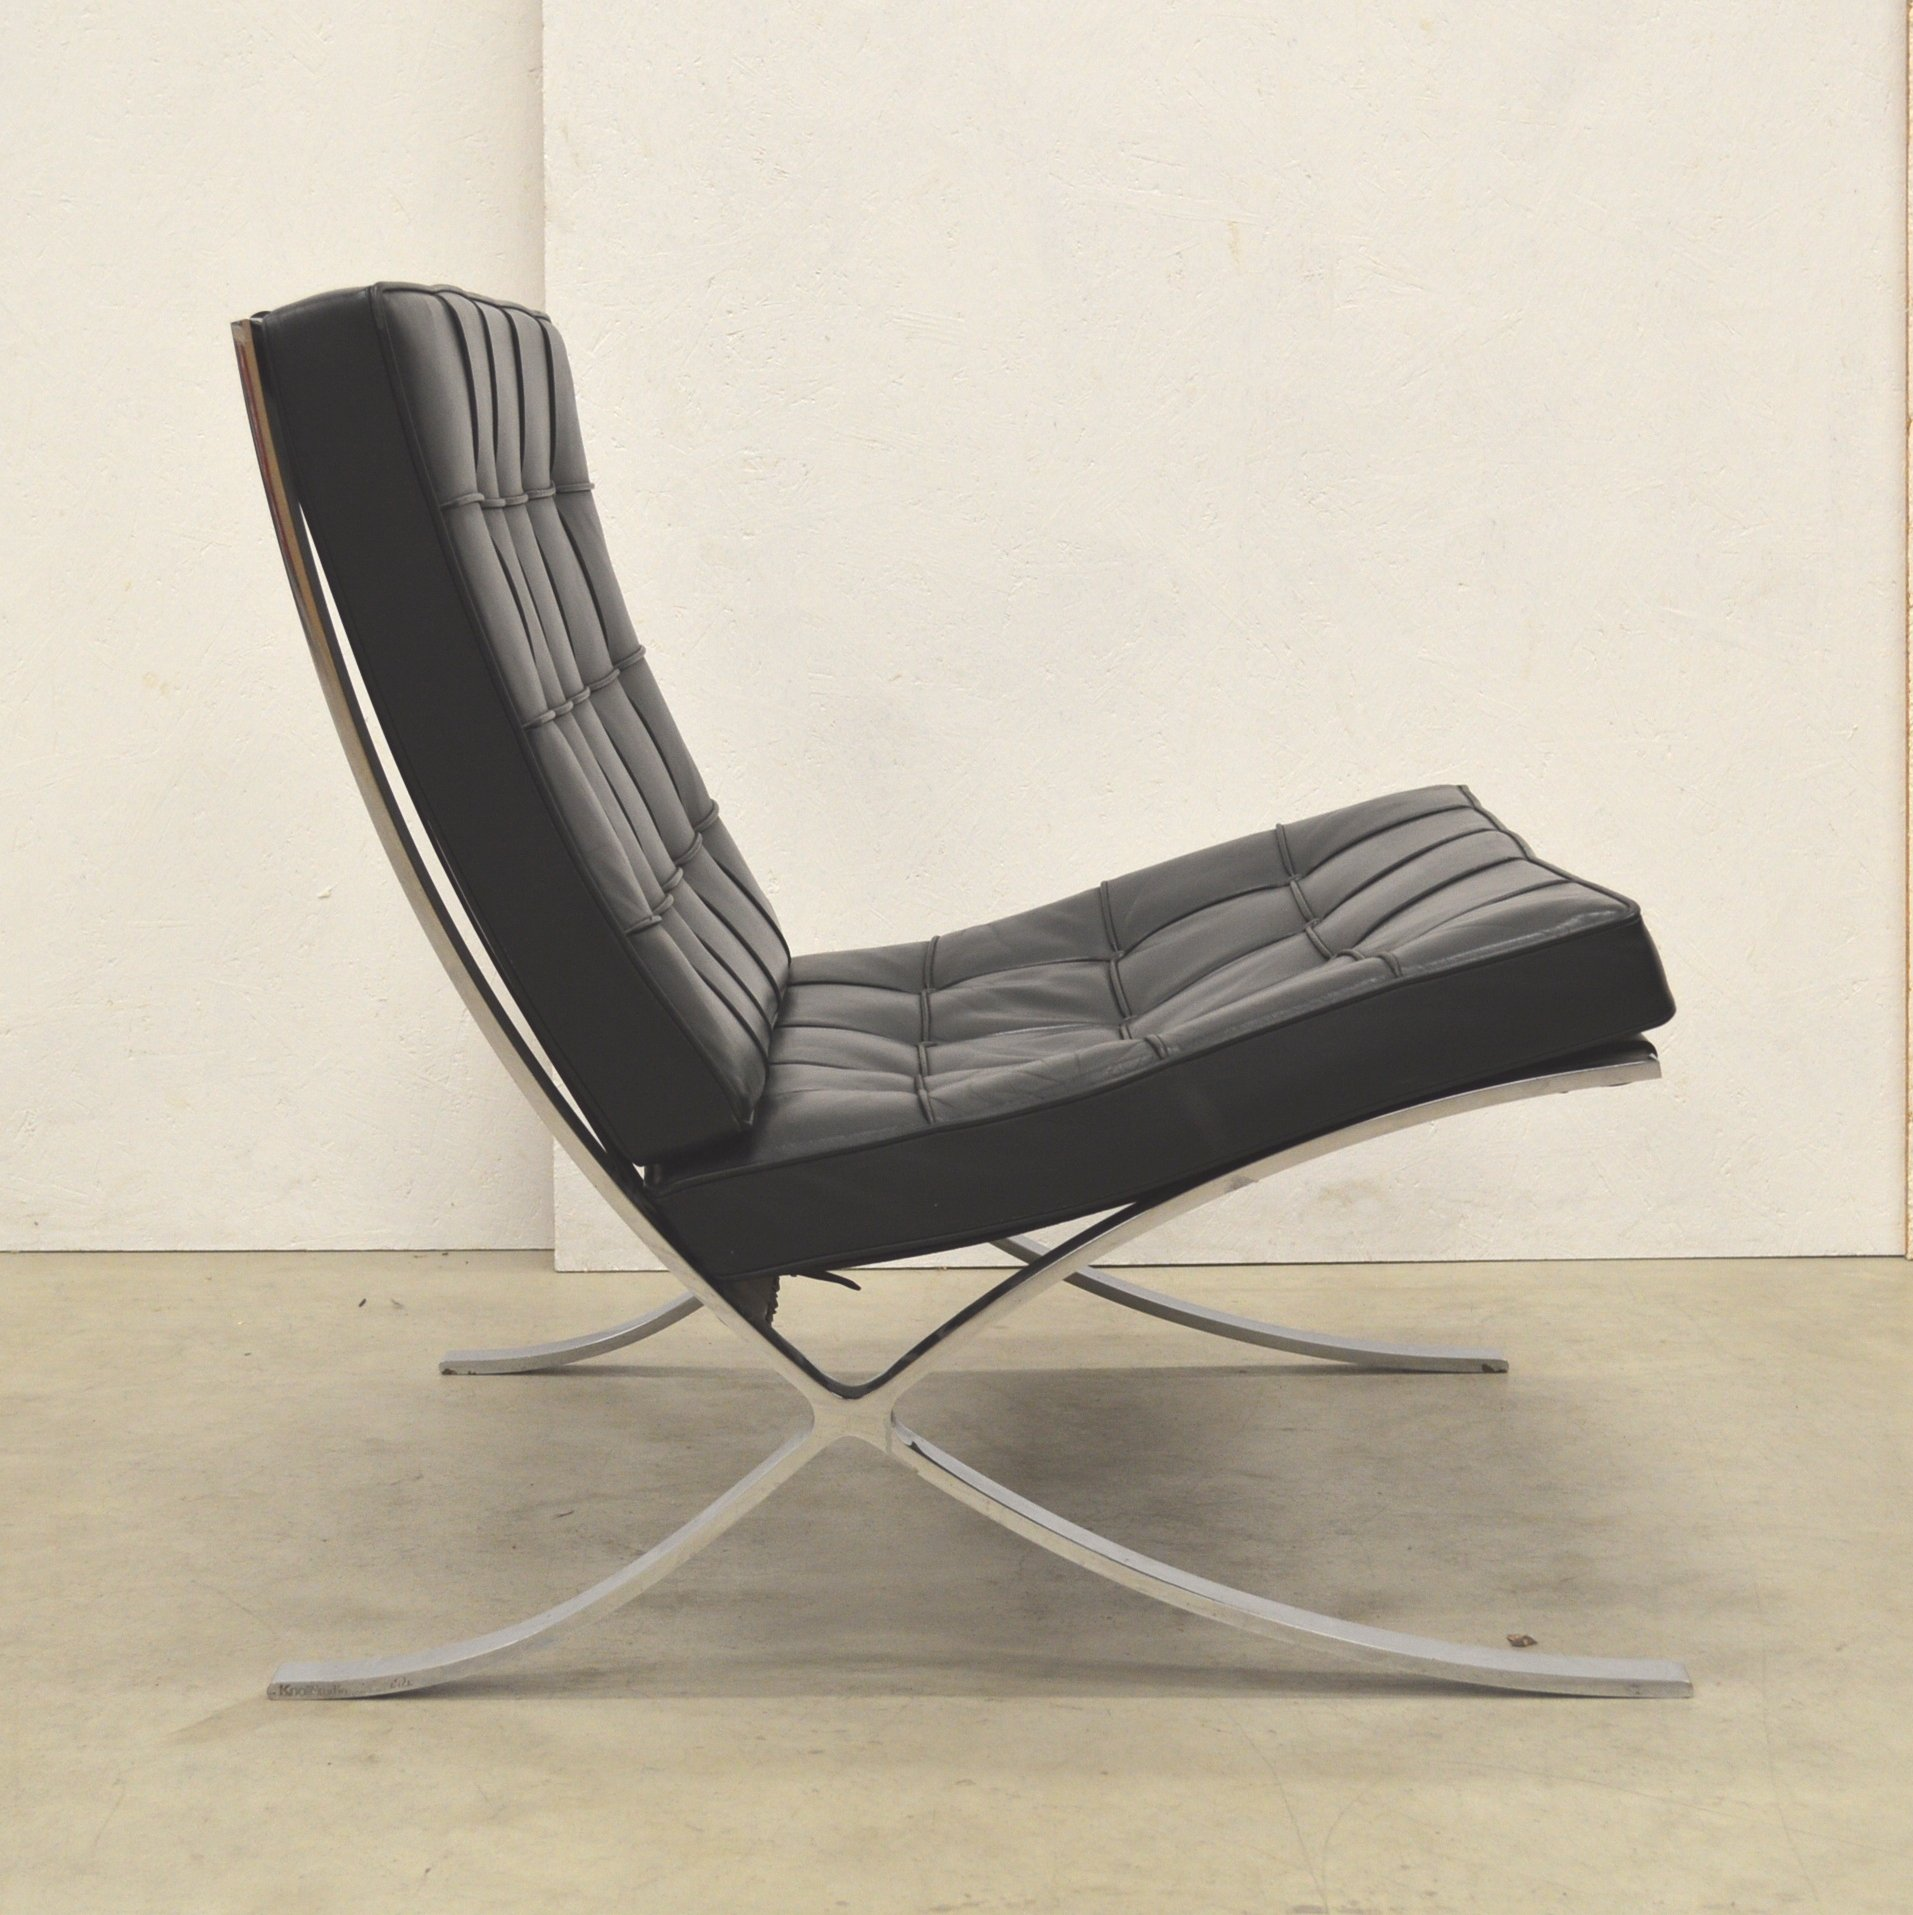 Chaise Brno Mies Van Der Rohe barcelona lounge chairludwig mies van der rohe for knoll